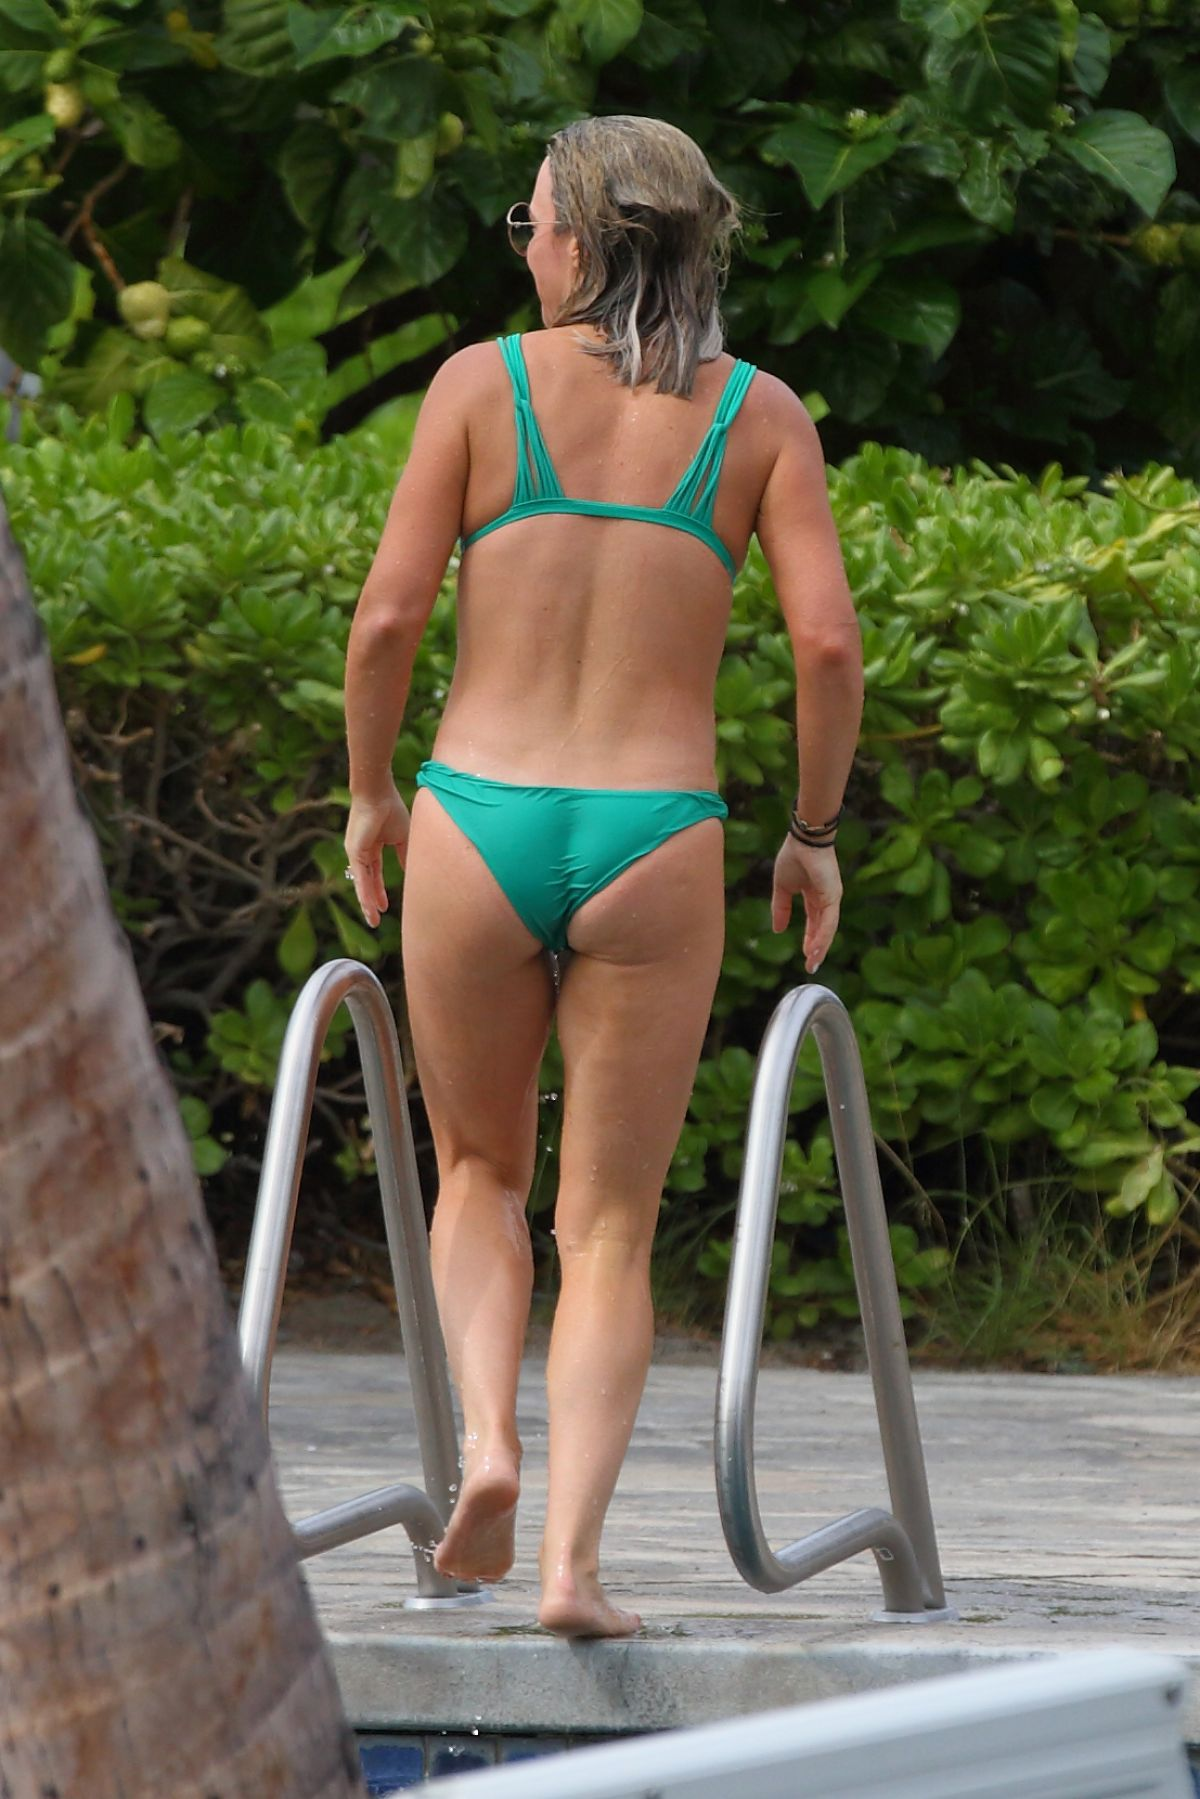 Teddi Jo Mellencamp In Bikini At A Pool In Hawaii 10 20